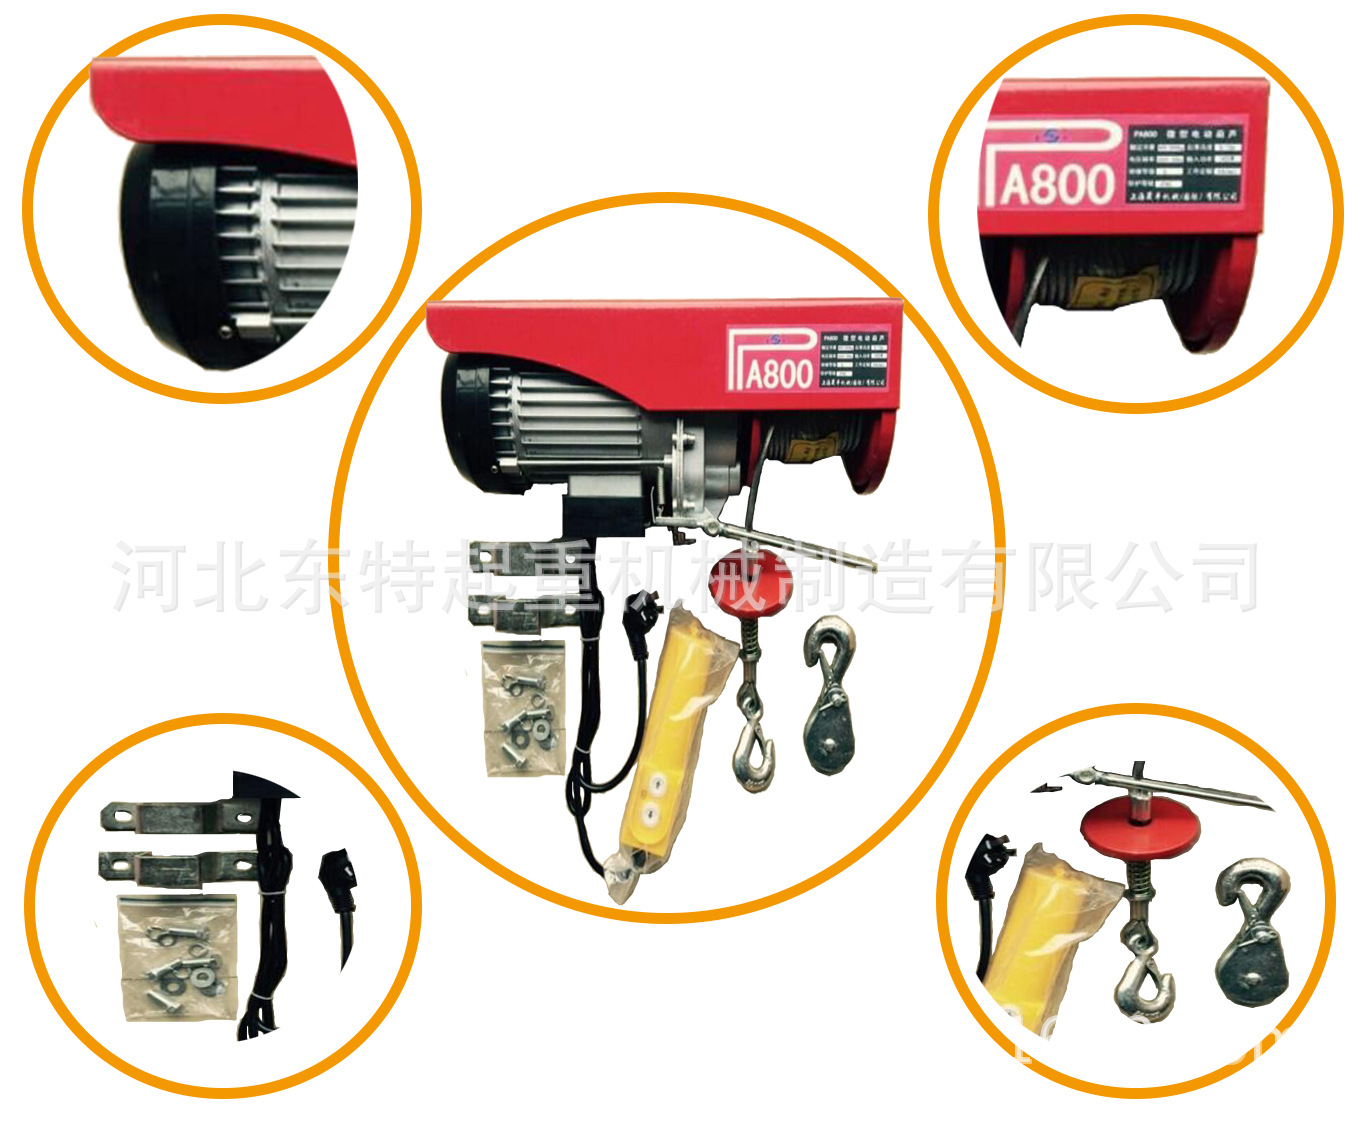 Dongte 220V PA800 Mini micro electric hoist hoist factory direct line remote control suspension can